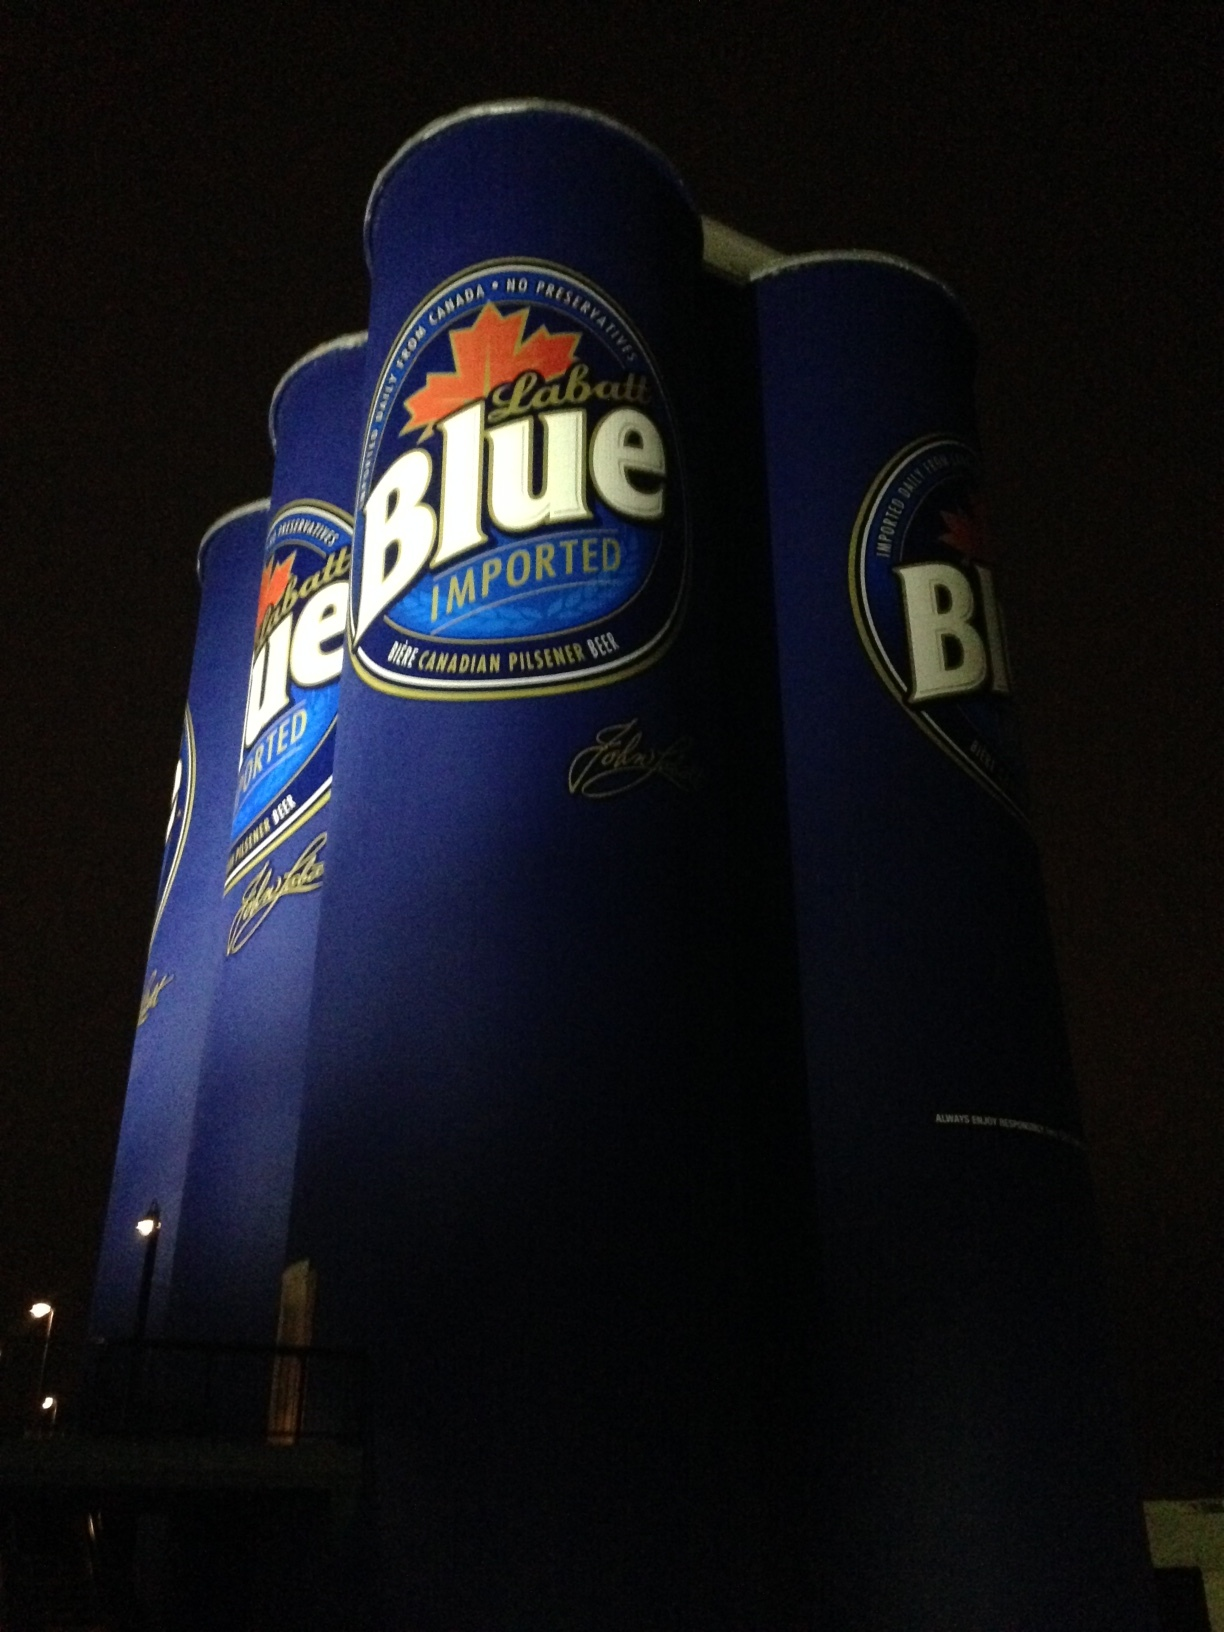 Knox: Now this is a drink! These Labatt Blue Cans are abandoned grain elevator silos 10 storeys tall and are part of Riverworks sports oriented entertainment complex. RW